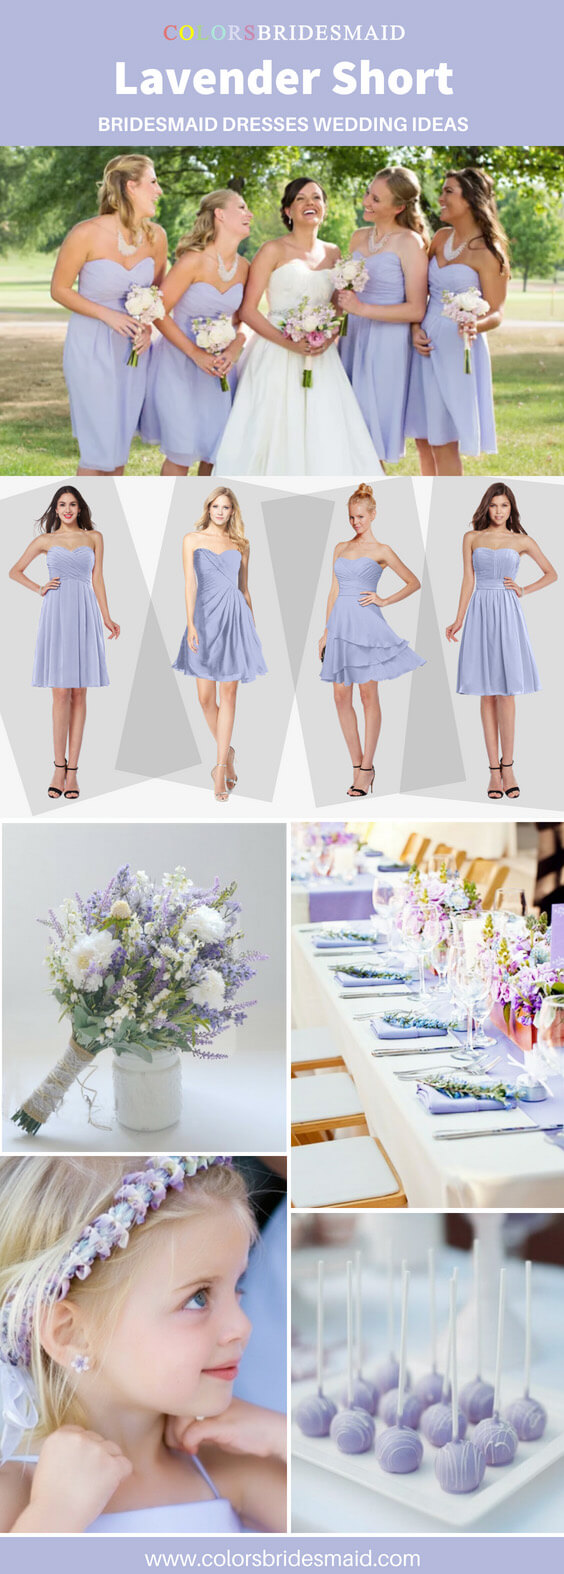 lavender short bridesmaid dresses